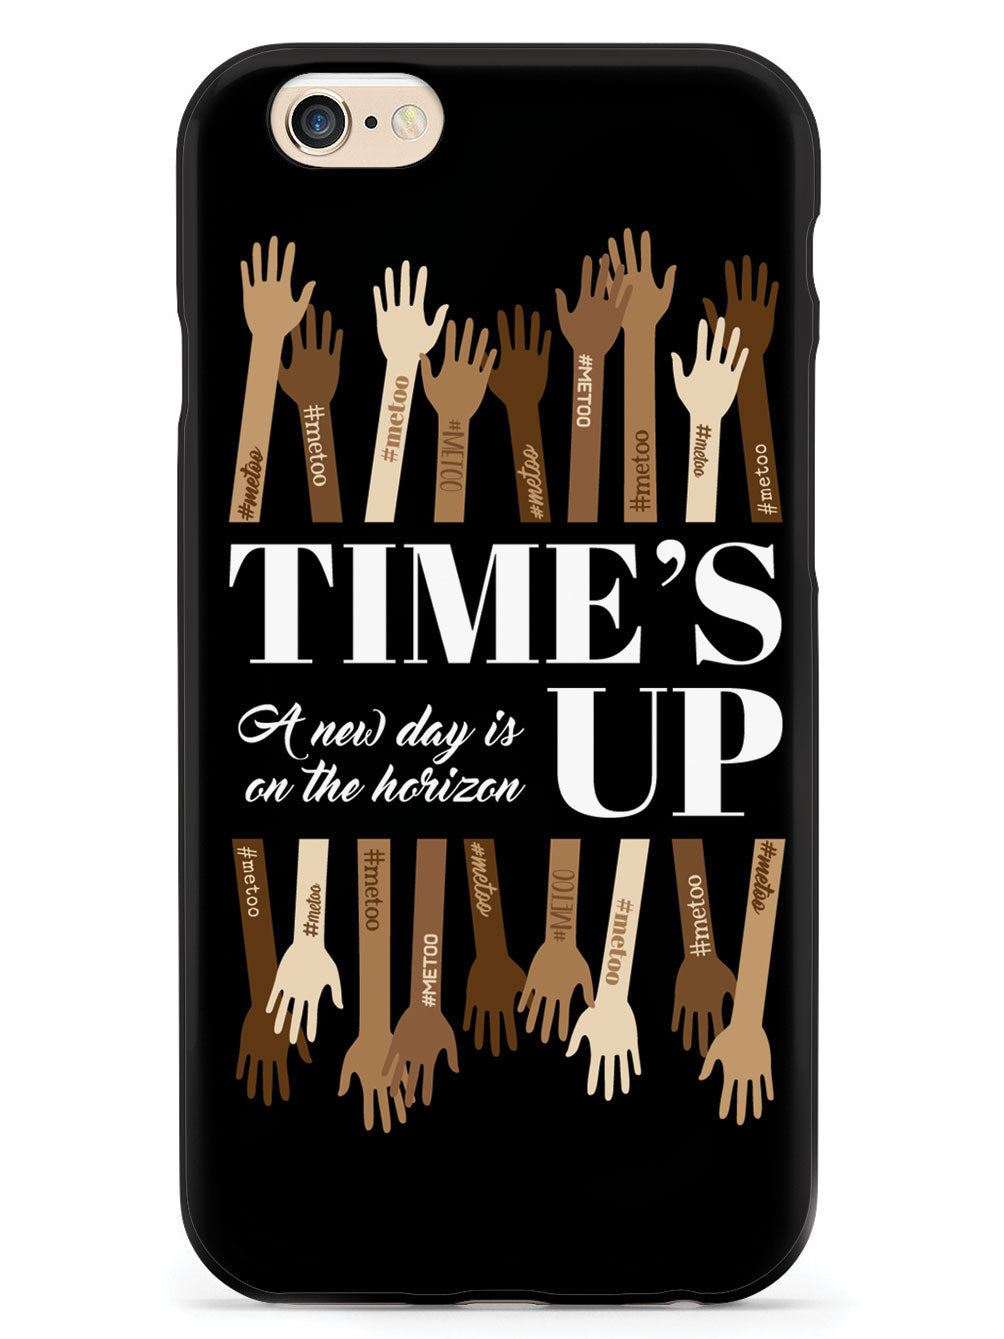 Time's Up - A New Day is on the Horizon - #MeToo - Black Case